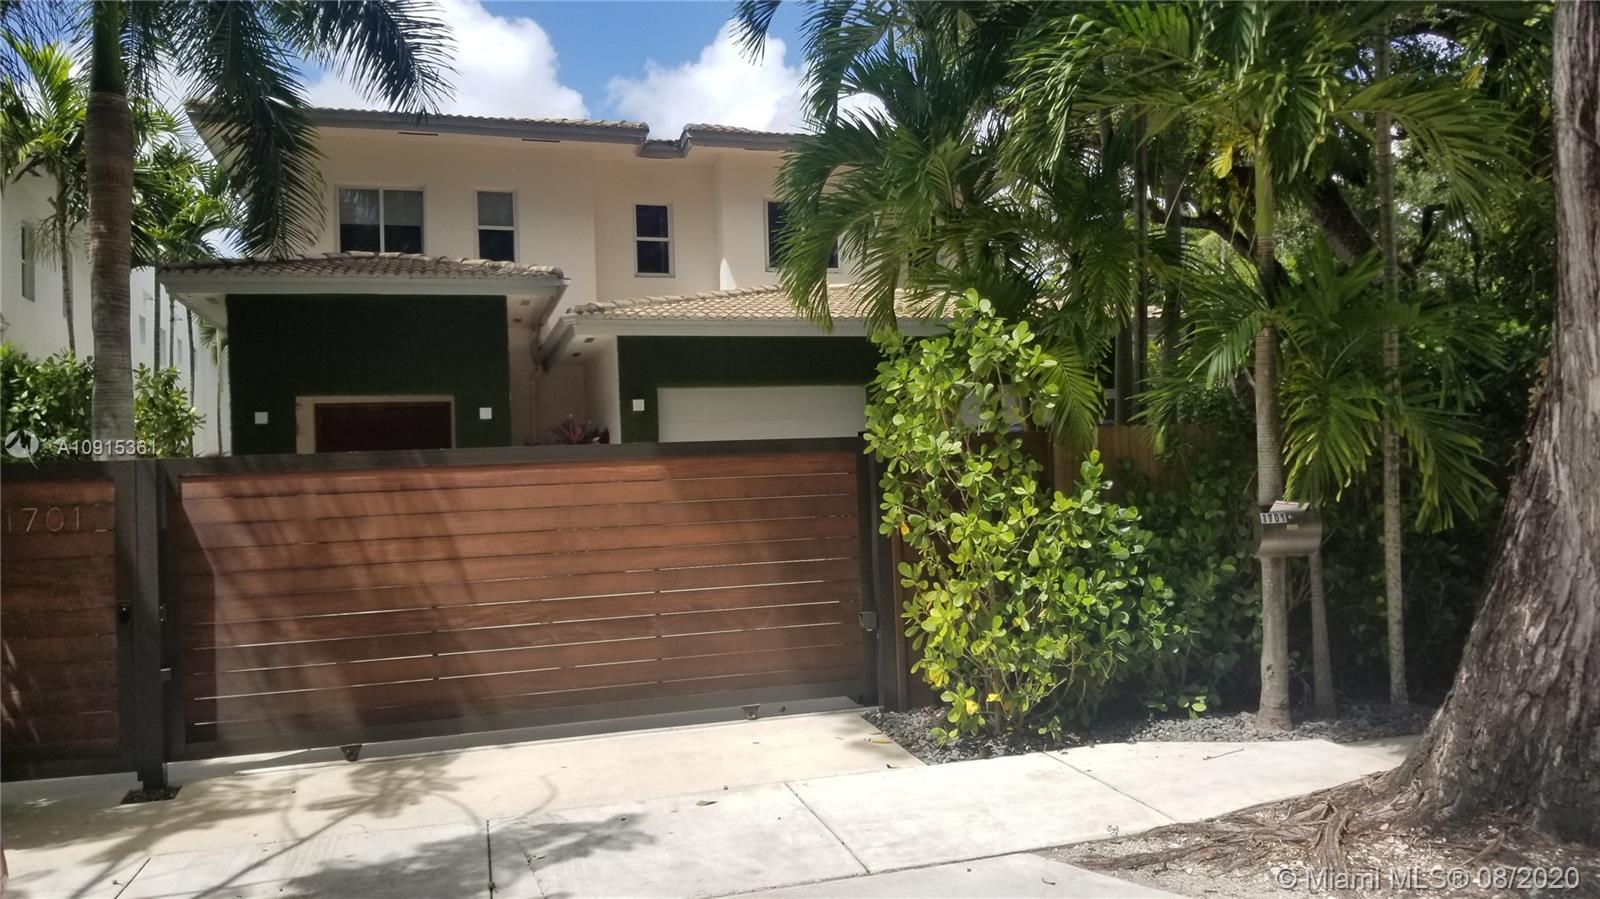 Completely remodeled North Grove home located close to the best schools, Downtown Miami and Brickell,  featuring an open floor plan with high ceilings, marble flooring downstairs, wood in bedrooms, 5 bedrooms 6 bath with maid quarters plus Den.   totally remodeled kitchen with quartz counter tops and Italian Lacquered kitchen cabinets. Custom made wood cabinets,  sparkling pool, private roof terrace and  2 1/2 car garage. Corner home is completely gated in zone X no flood zone. Bring your pickiest buyer.